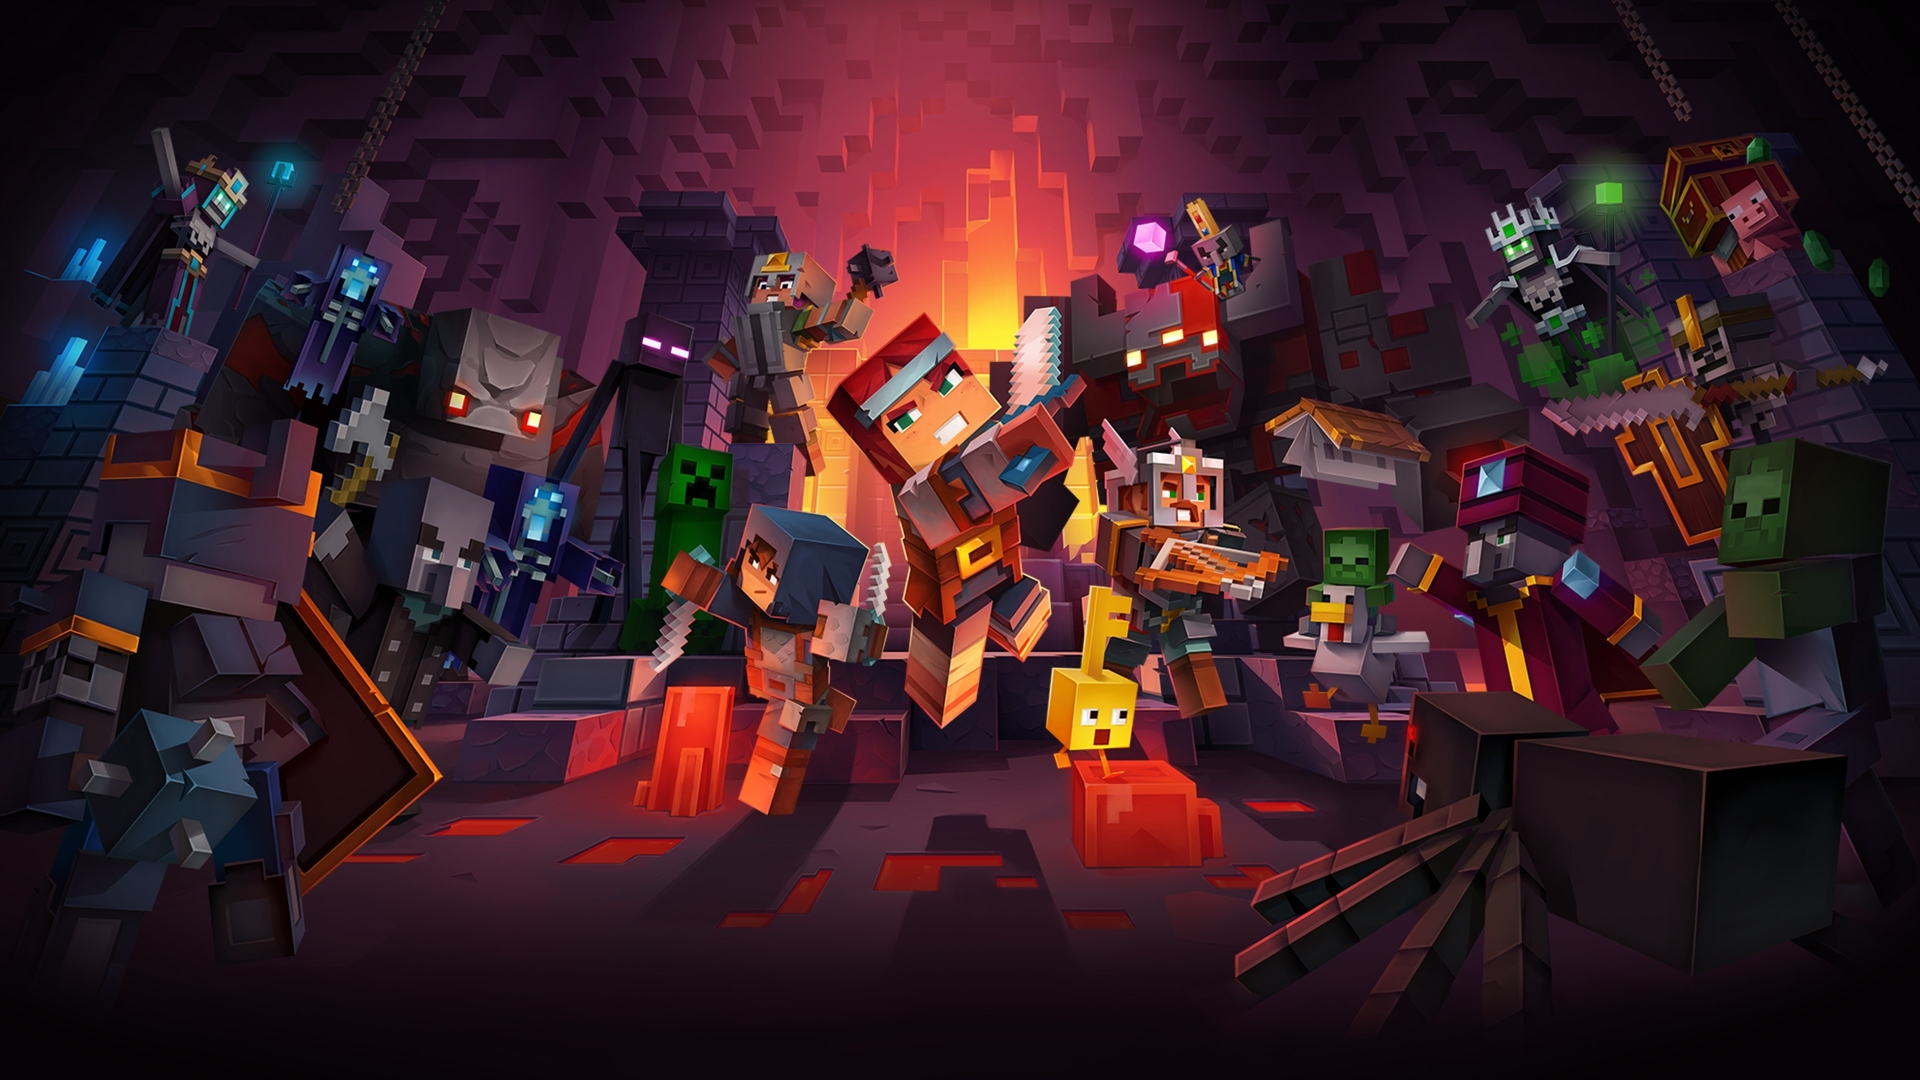 1920x1080 Minecraft Dungeons 4k 1080p Laptop Full Hd Wallpaper Hd Games 4k Wallpapers Images Photos And Background